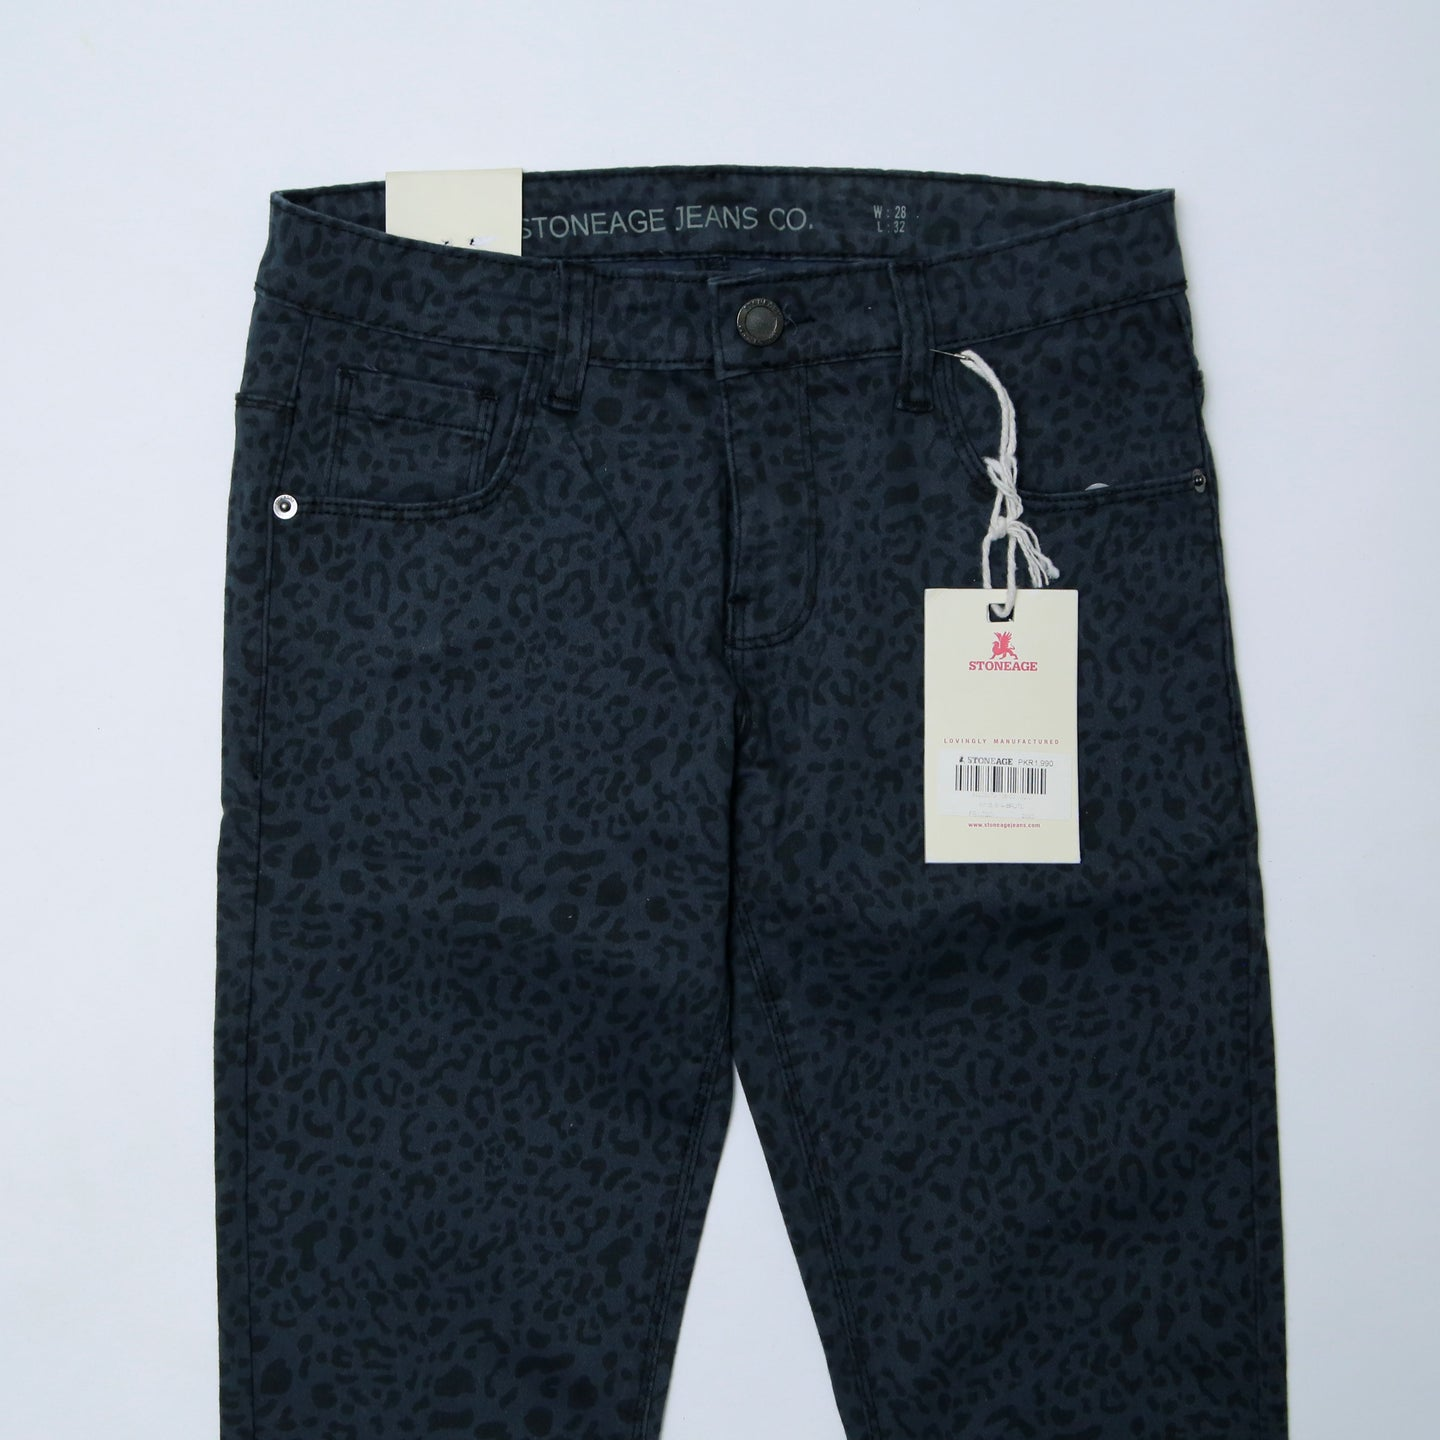 Stoneage Jeans - Brute - Printed Dark Grey Jeans